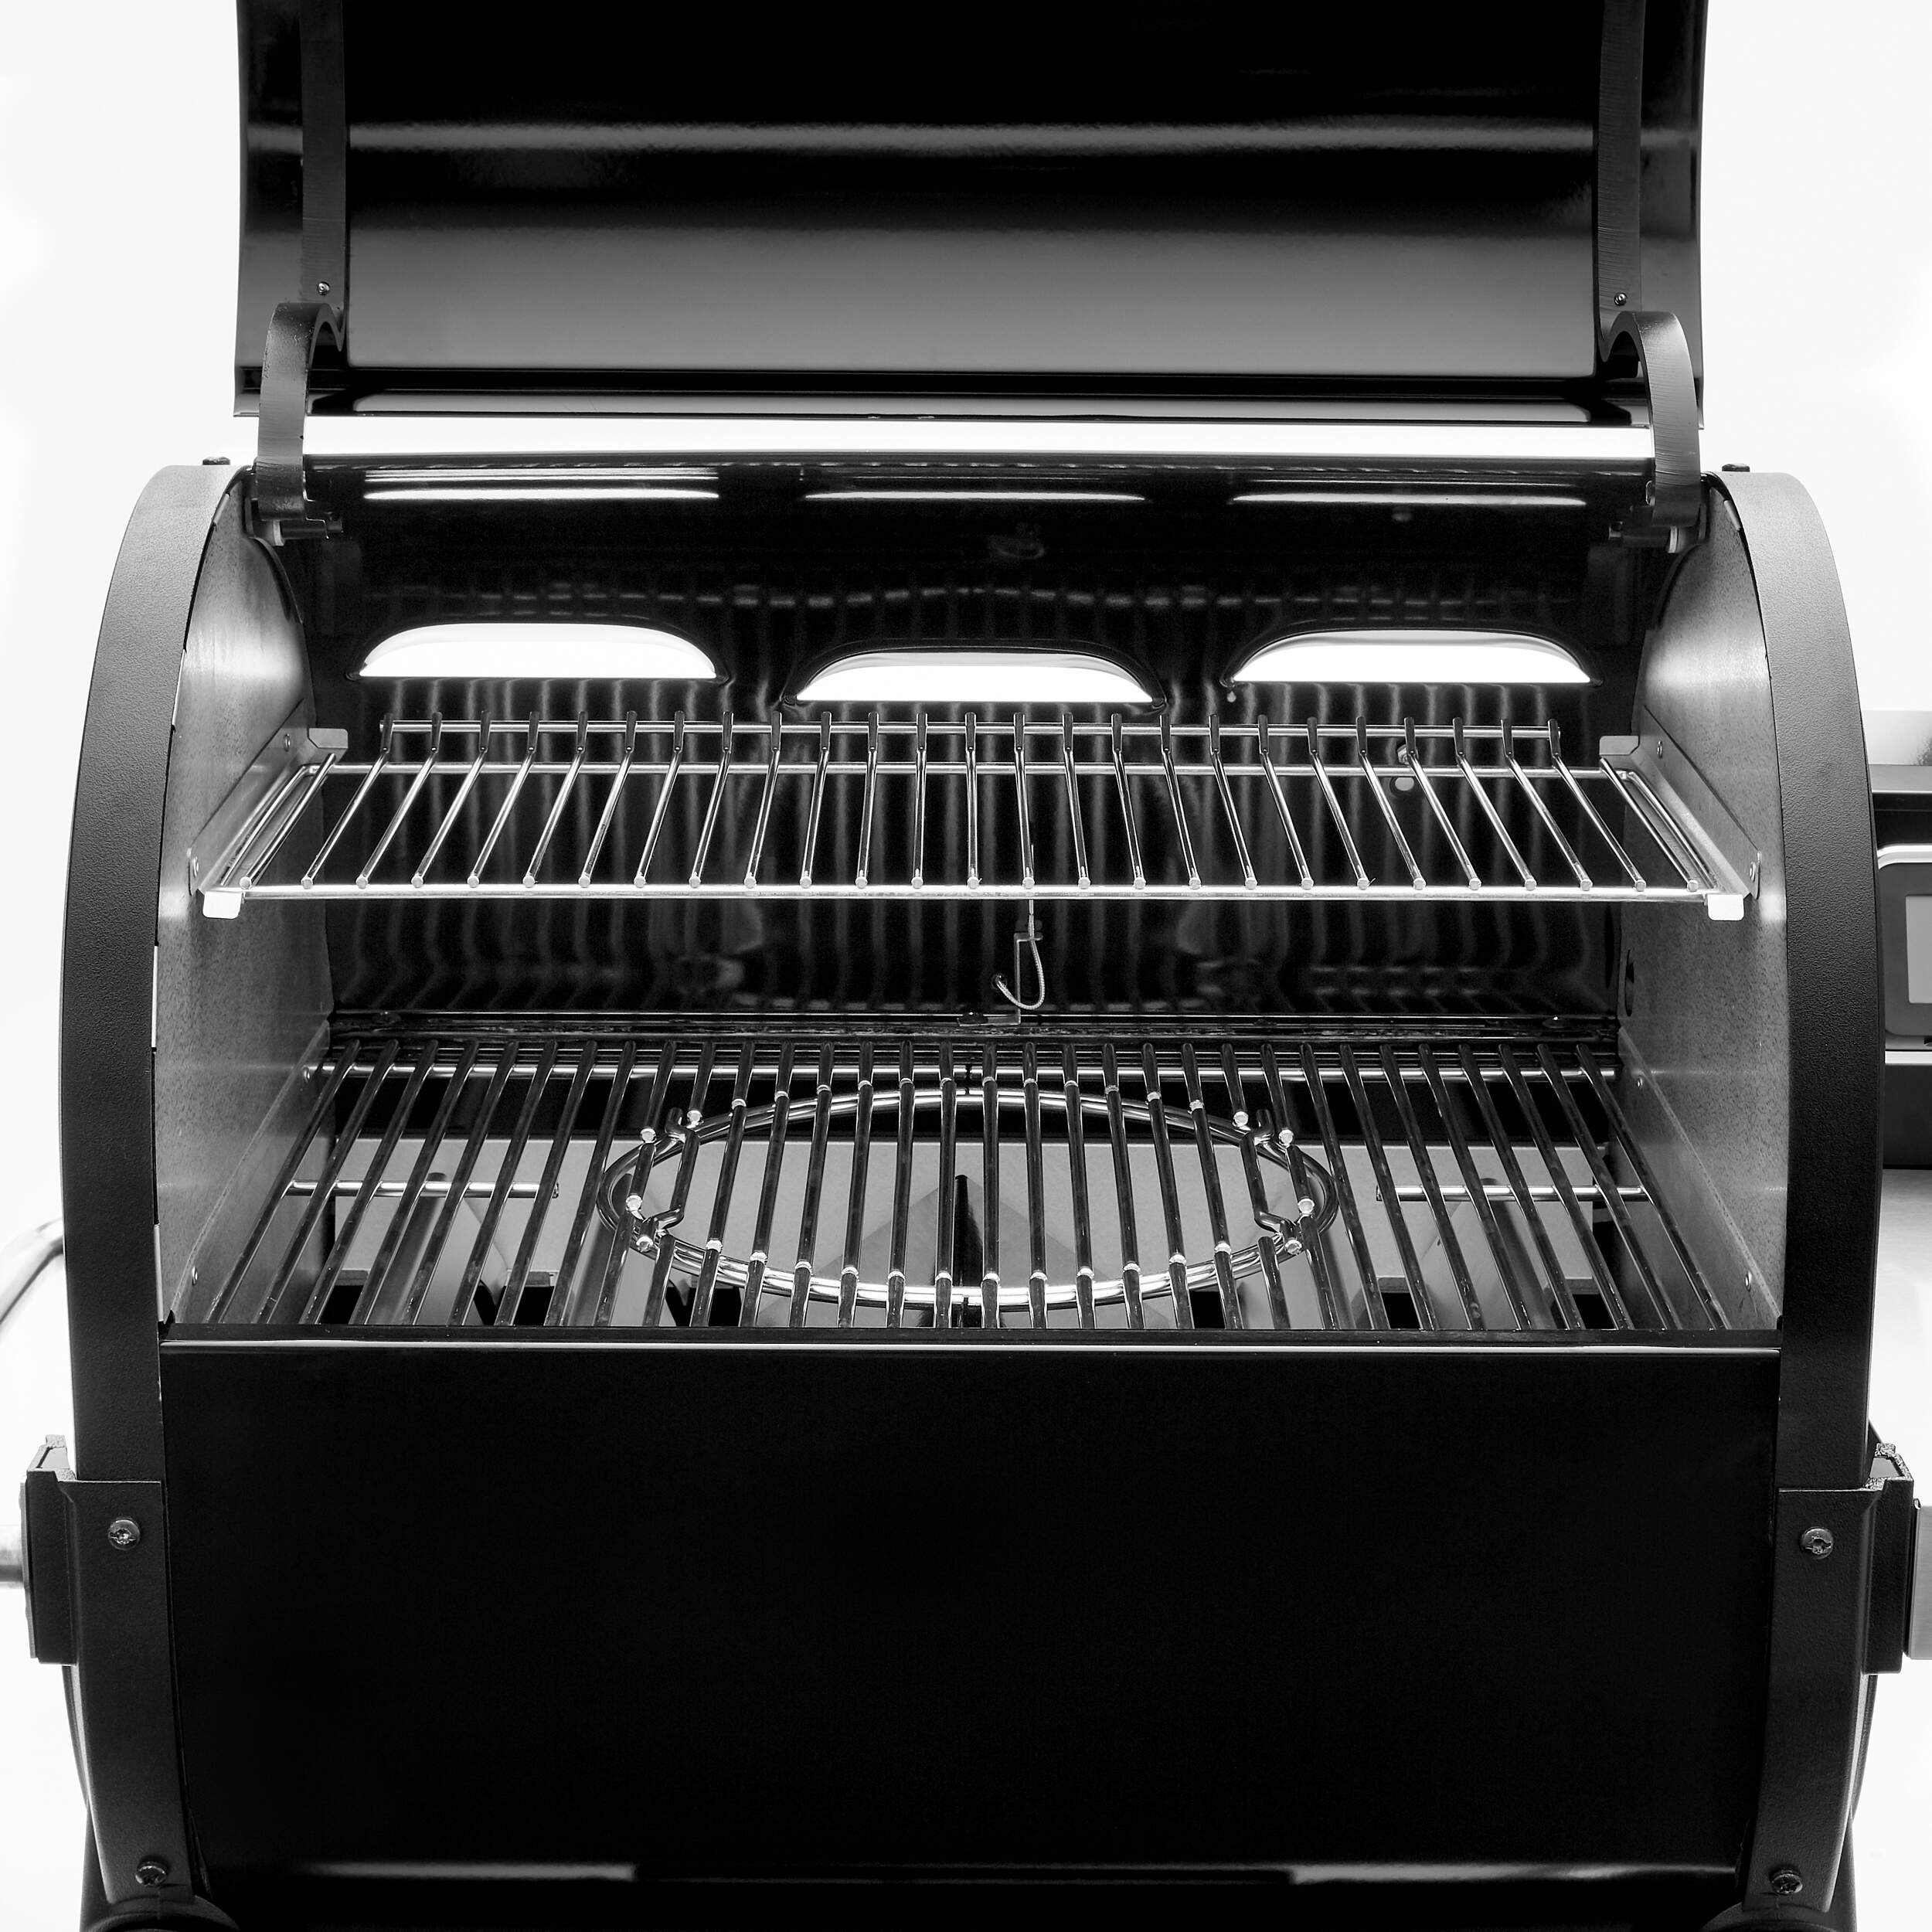 * SmokeFire EX4 GBS Holzpelletgrill